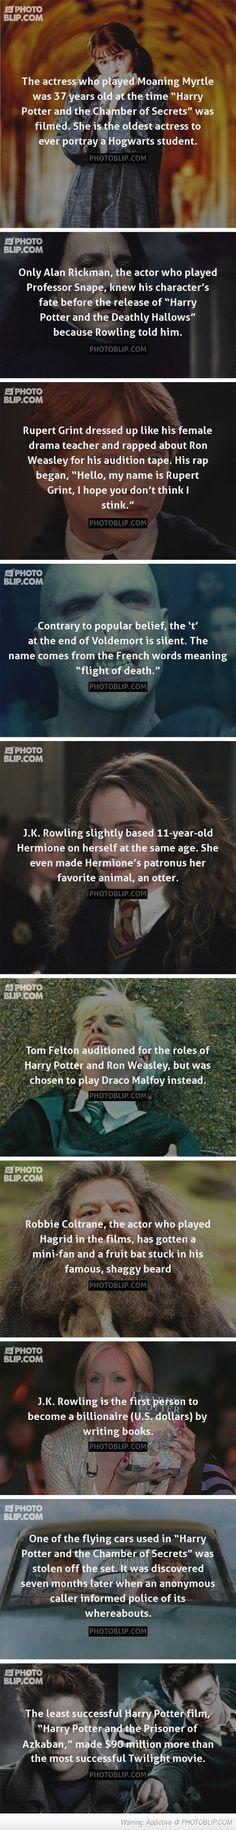 Harry Potter Facts That Will Knock You Off Your Broomstick | best stuff